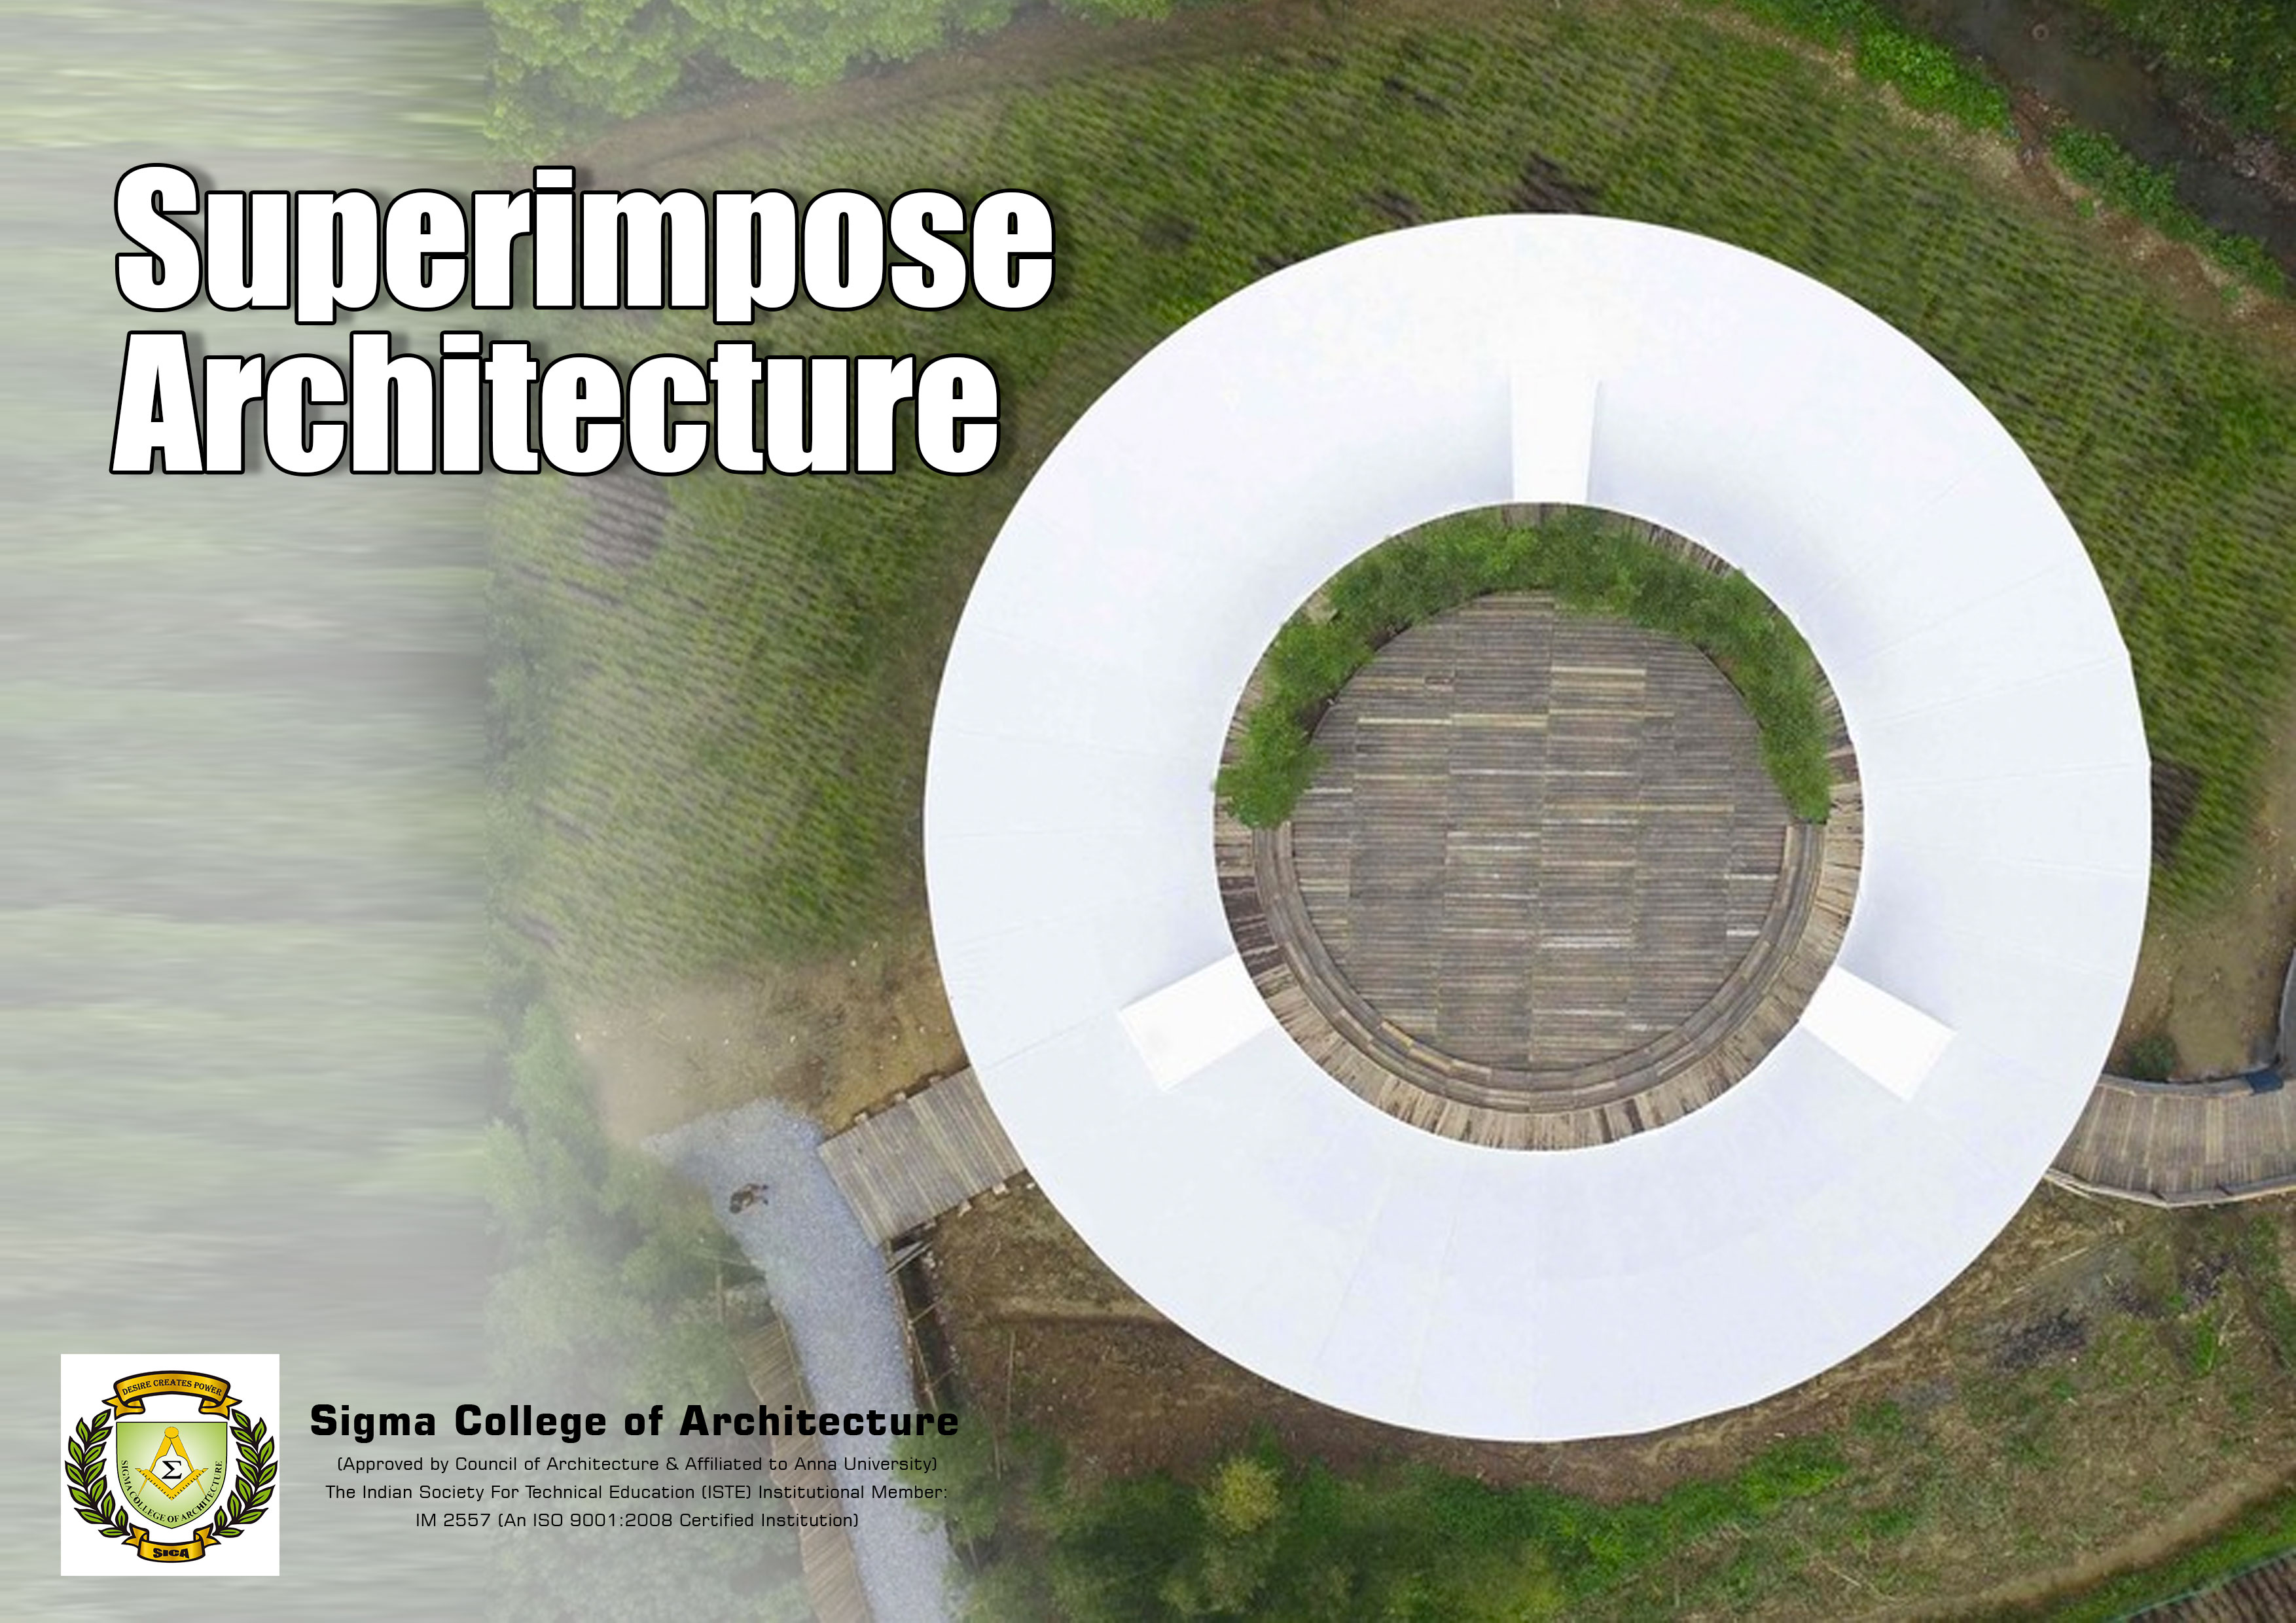 Superimpose Architecture